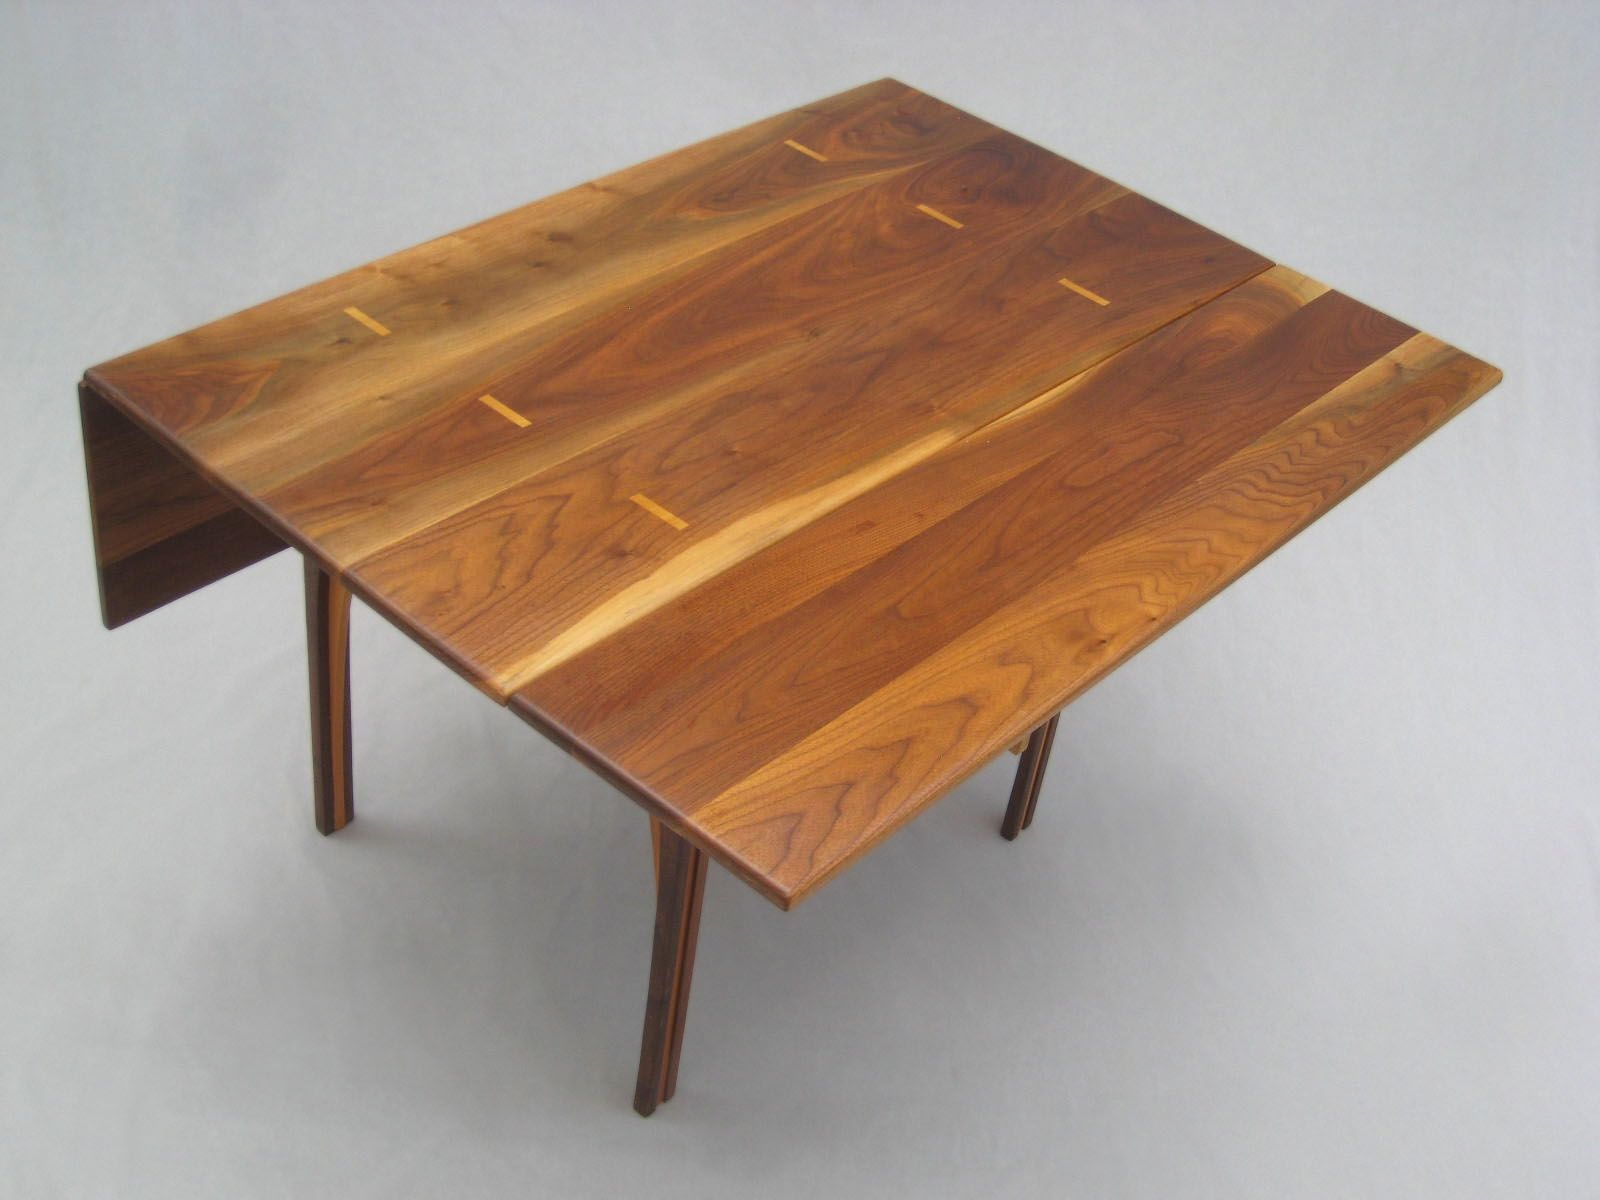 Buy A Custom Solid Walnut Drop Leaf Table Made To Order From